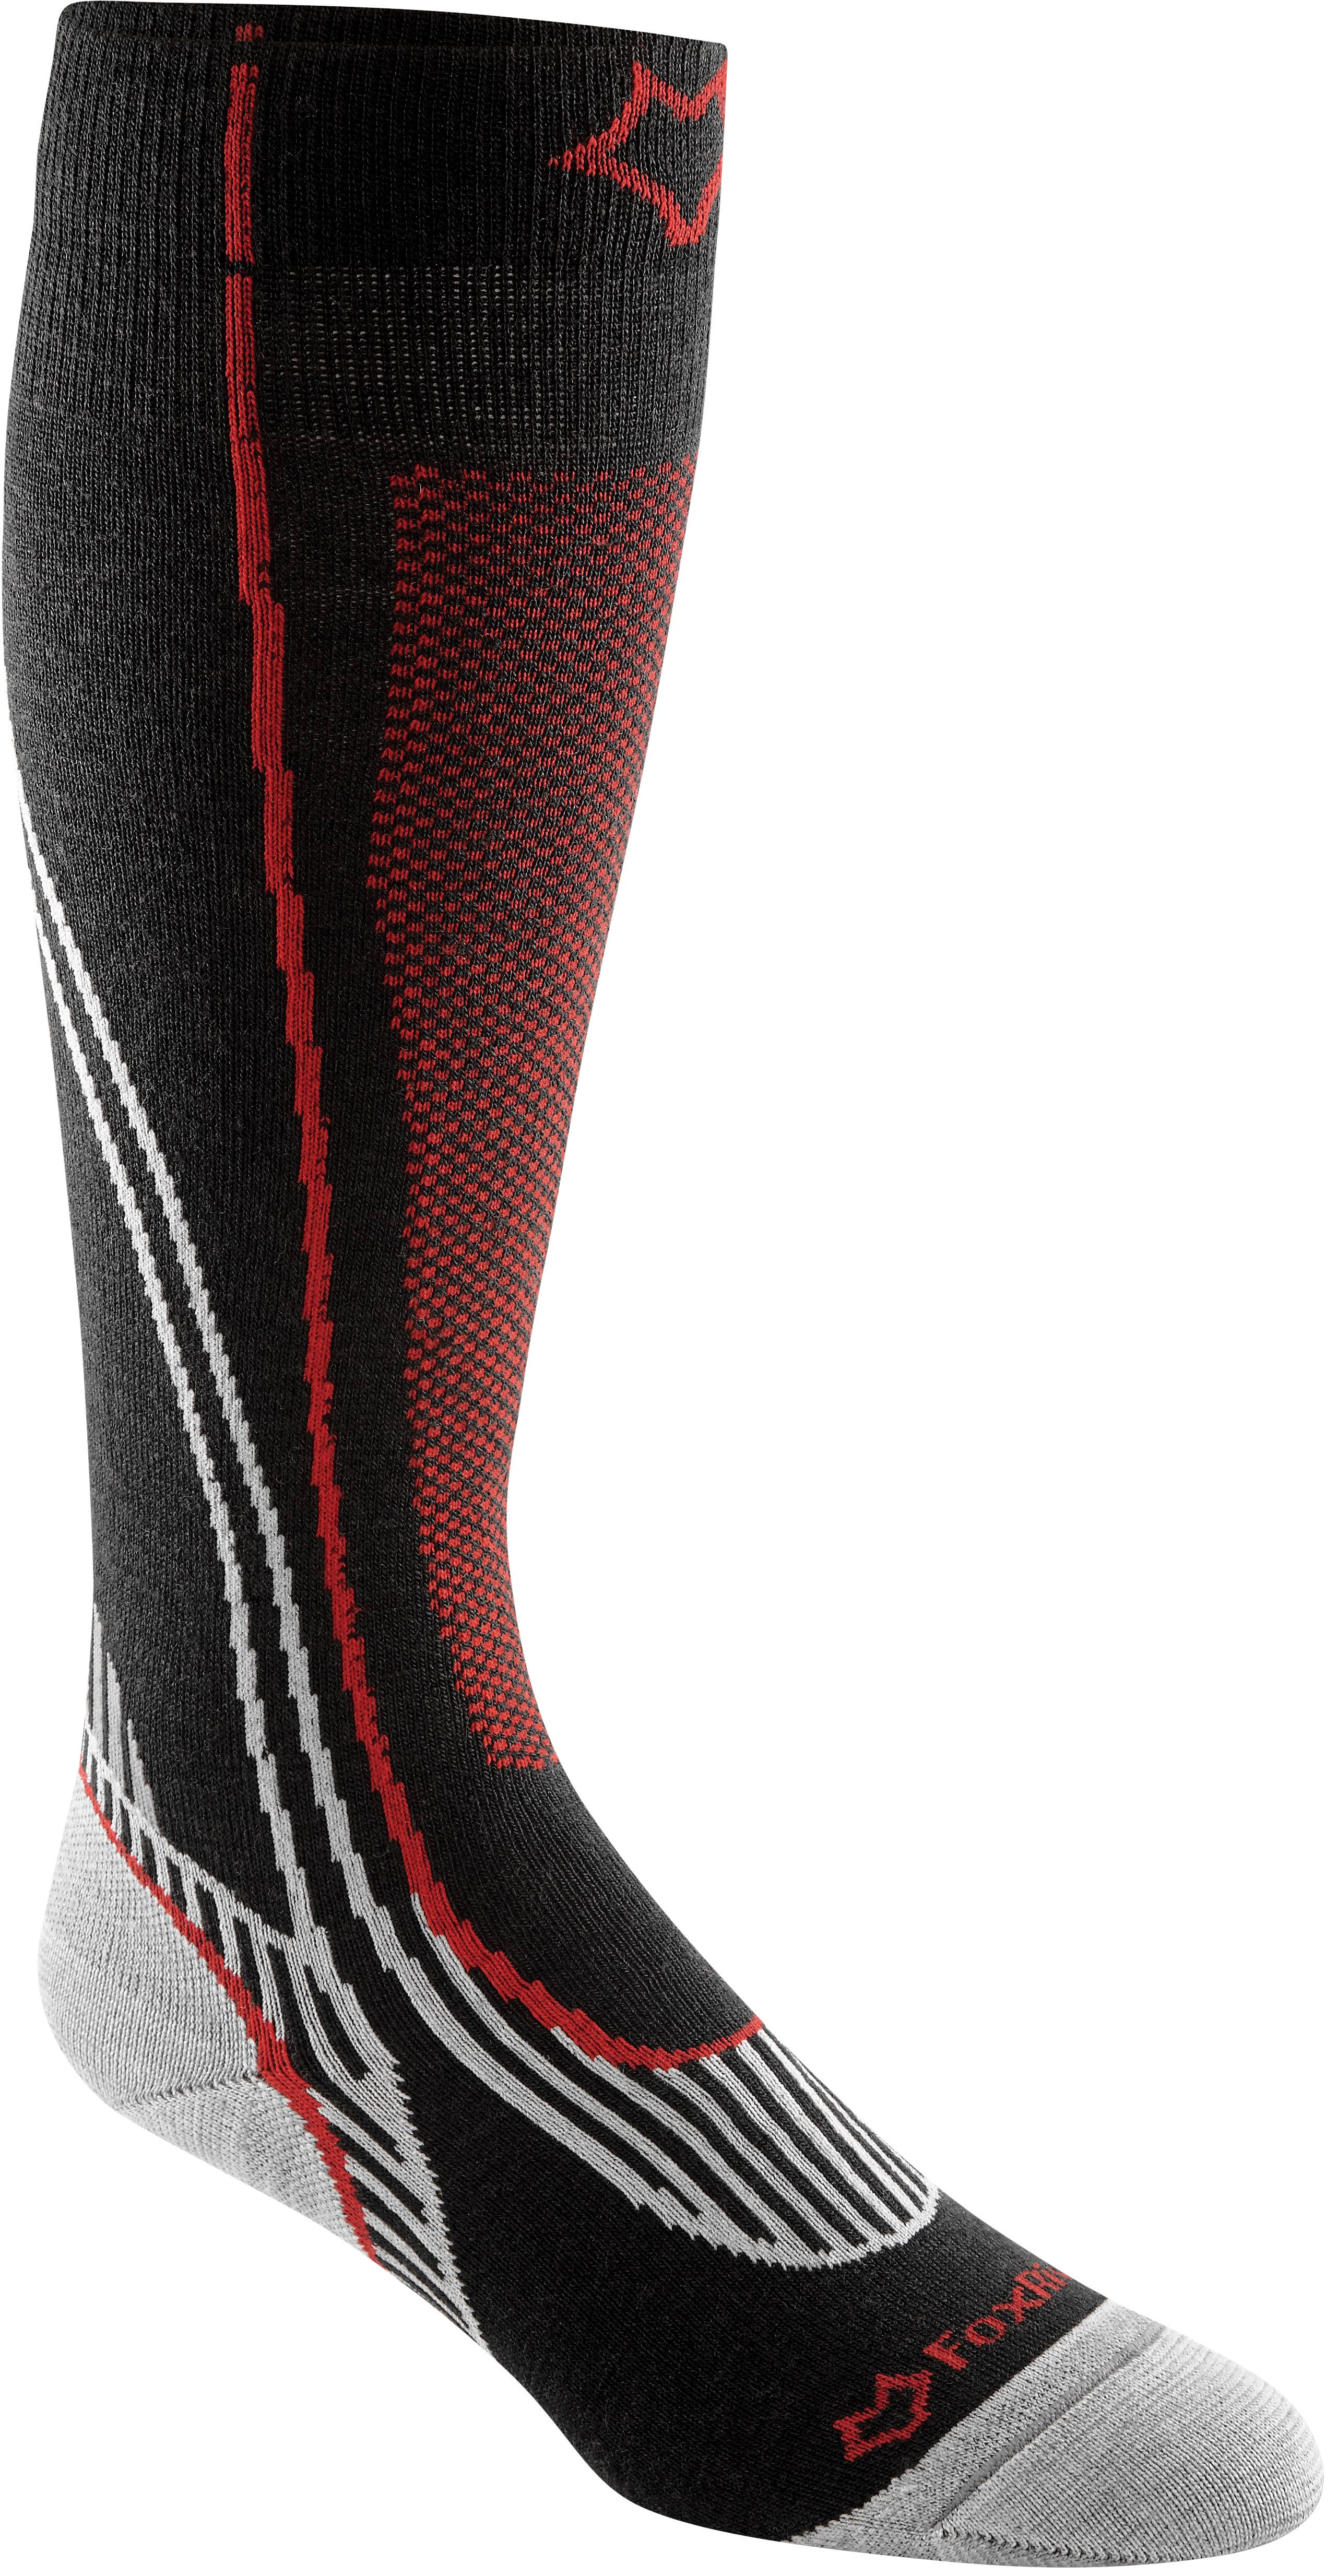 Fox River 546261 Arapahoe Ski Sock Black & Red - Large